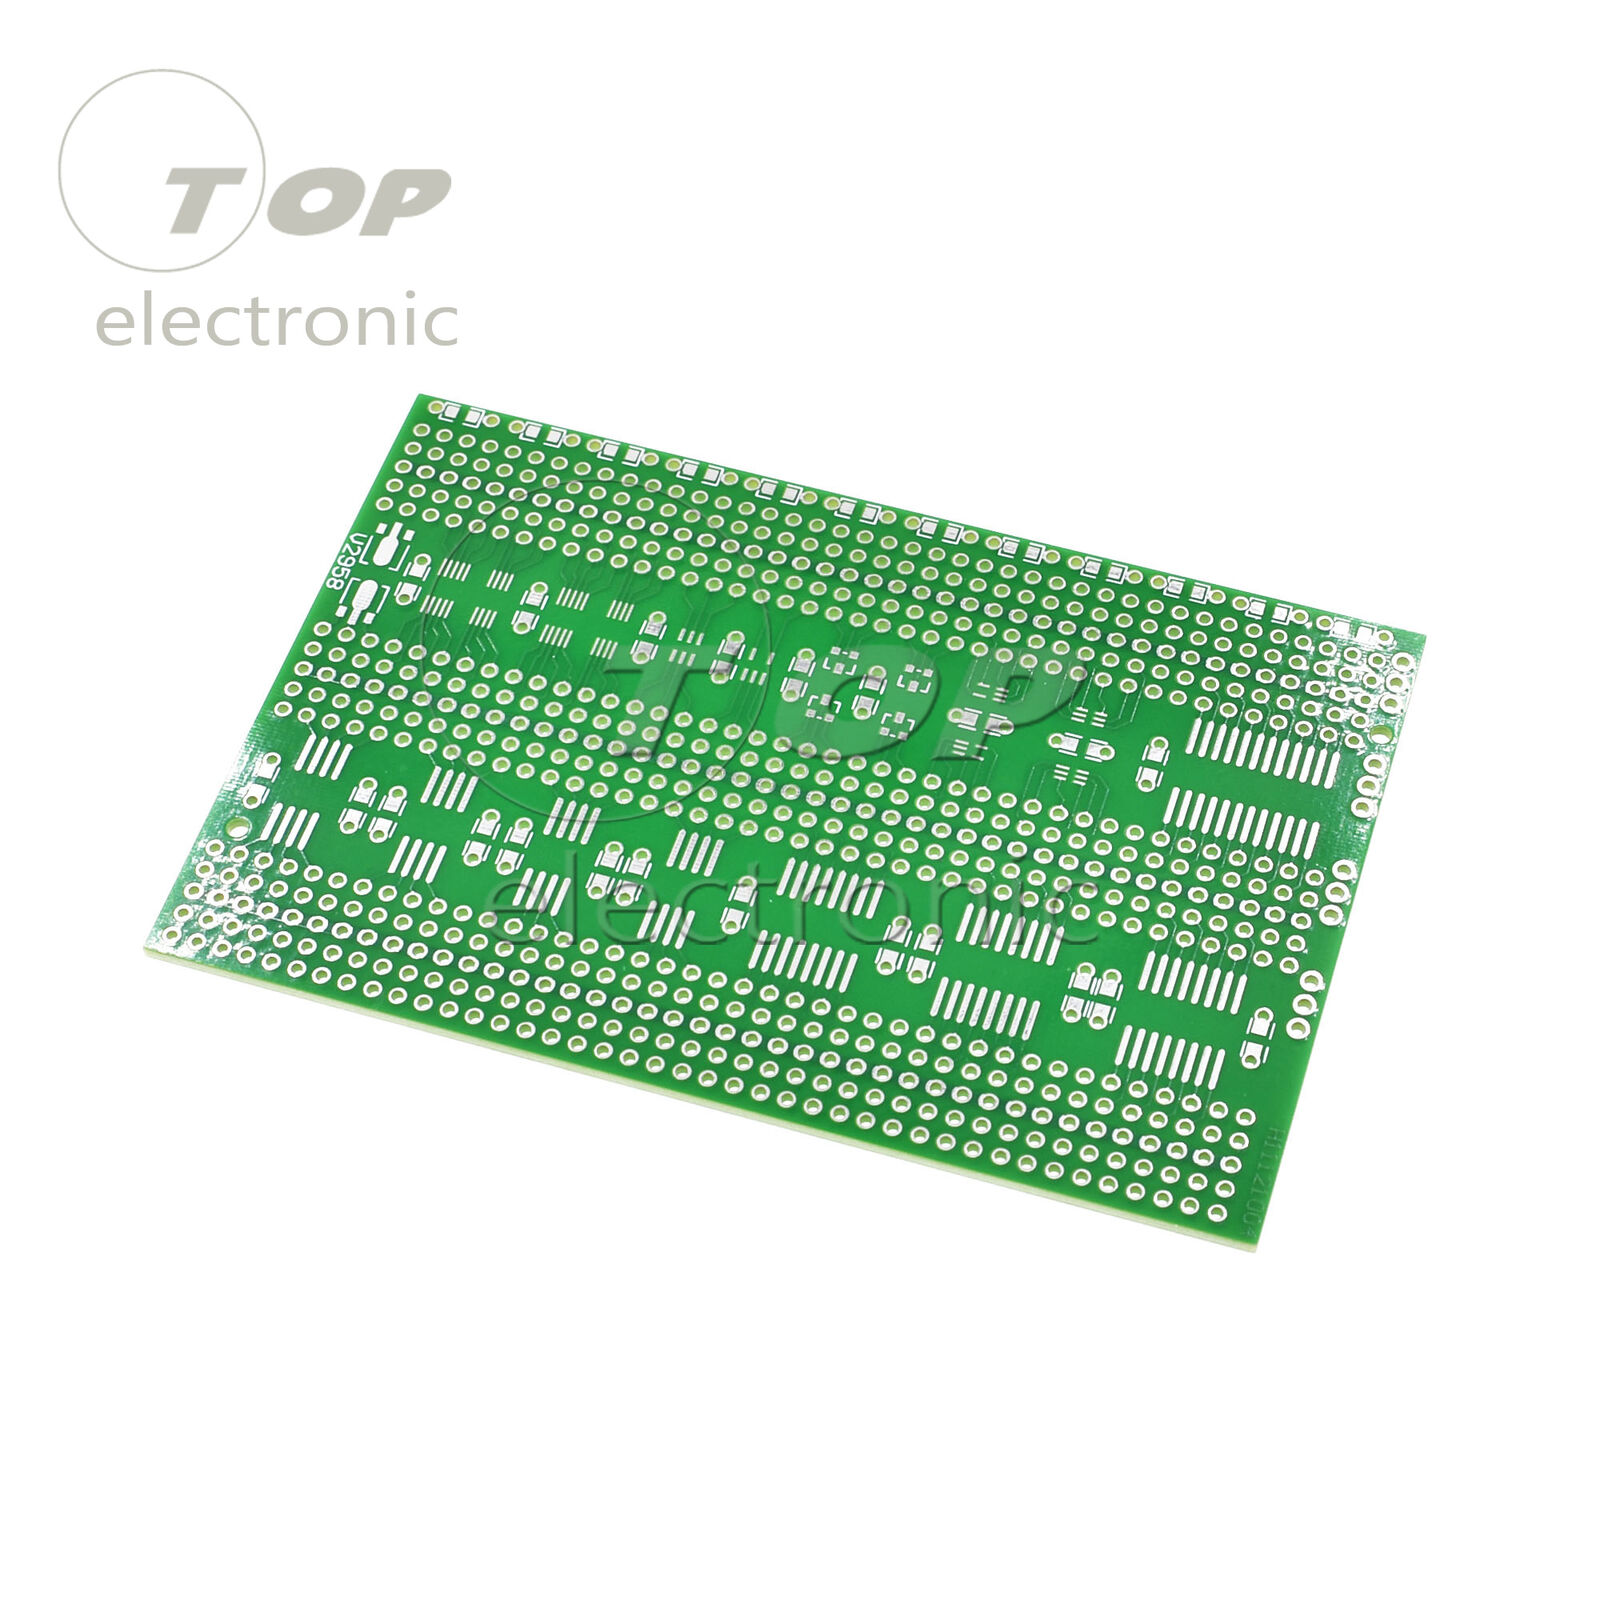 7x11cm Single Side Smd Prototype Universal Pcb Plate Experiment Veroboard Stripboard Software Circuit Board Ebay